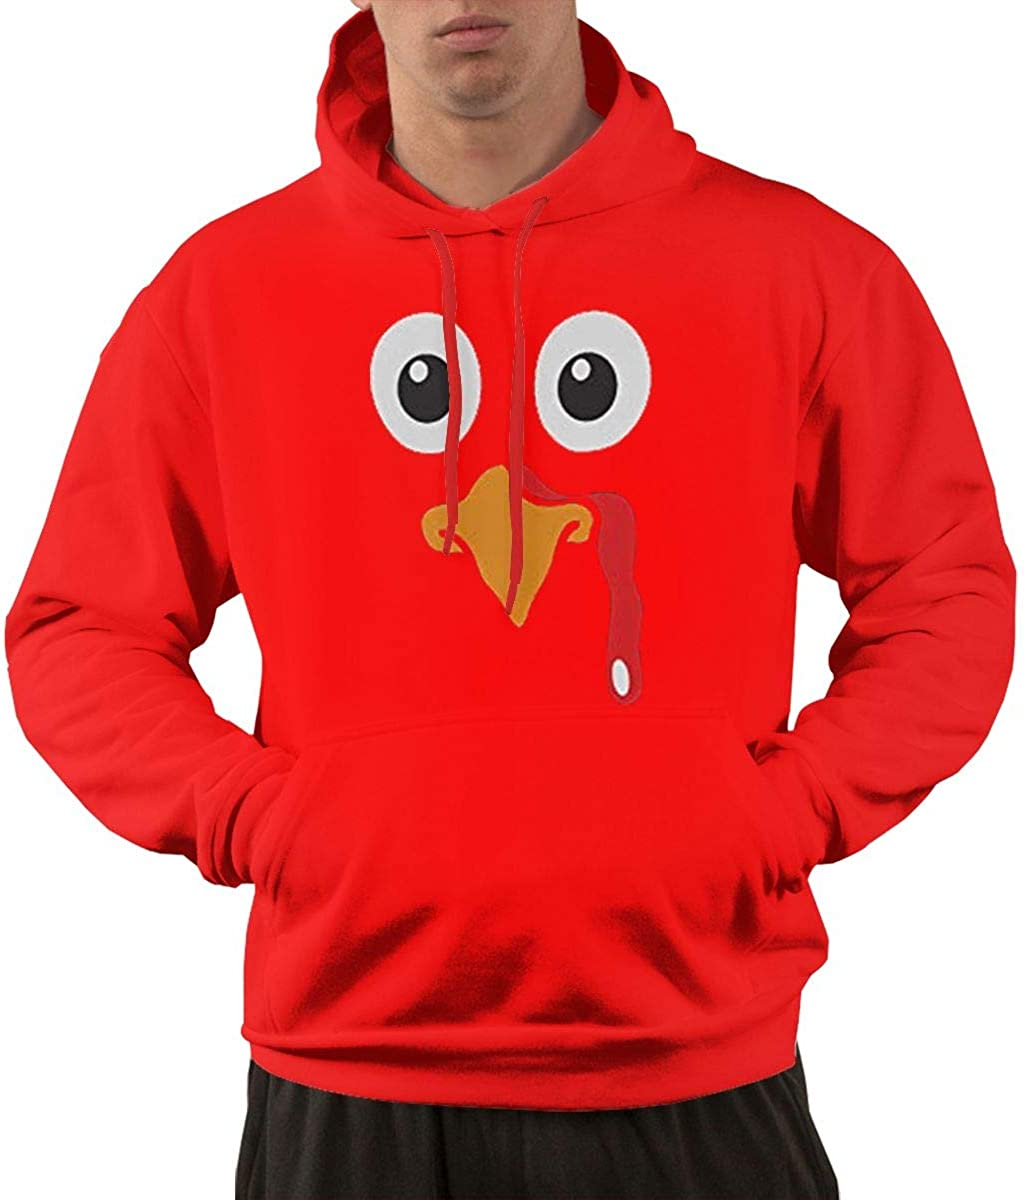 Get Now Re-emerwm Men Funny Jogging Pocket Hoodies Printed with Turkey Face Funny Thanksgiving